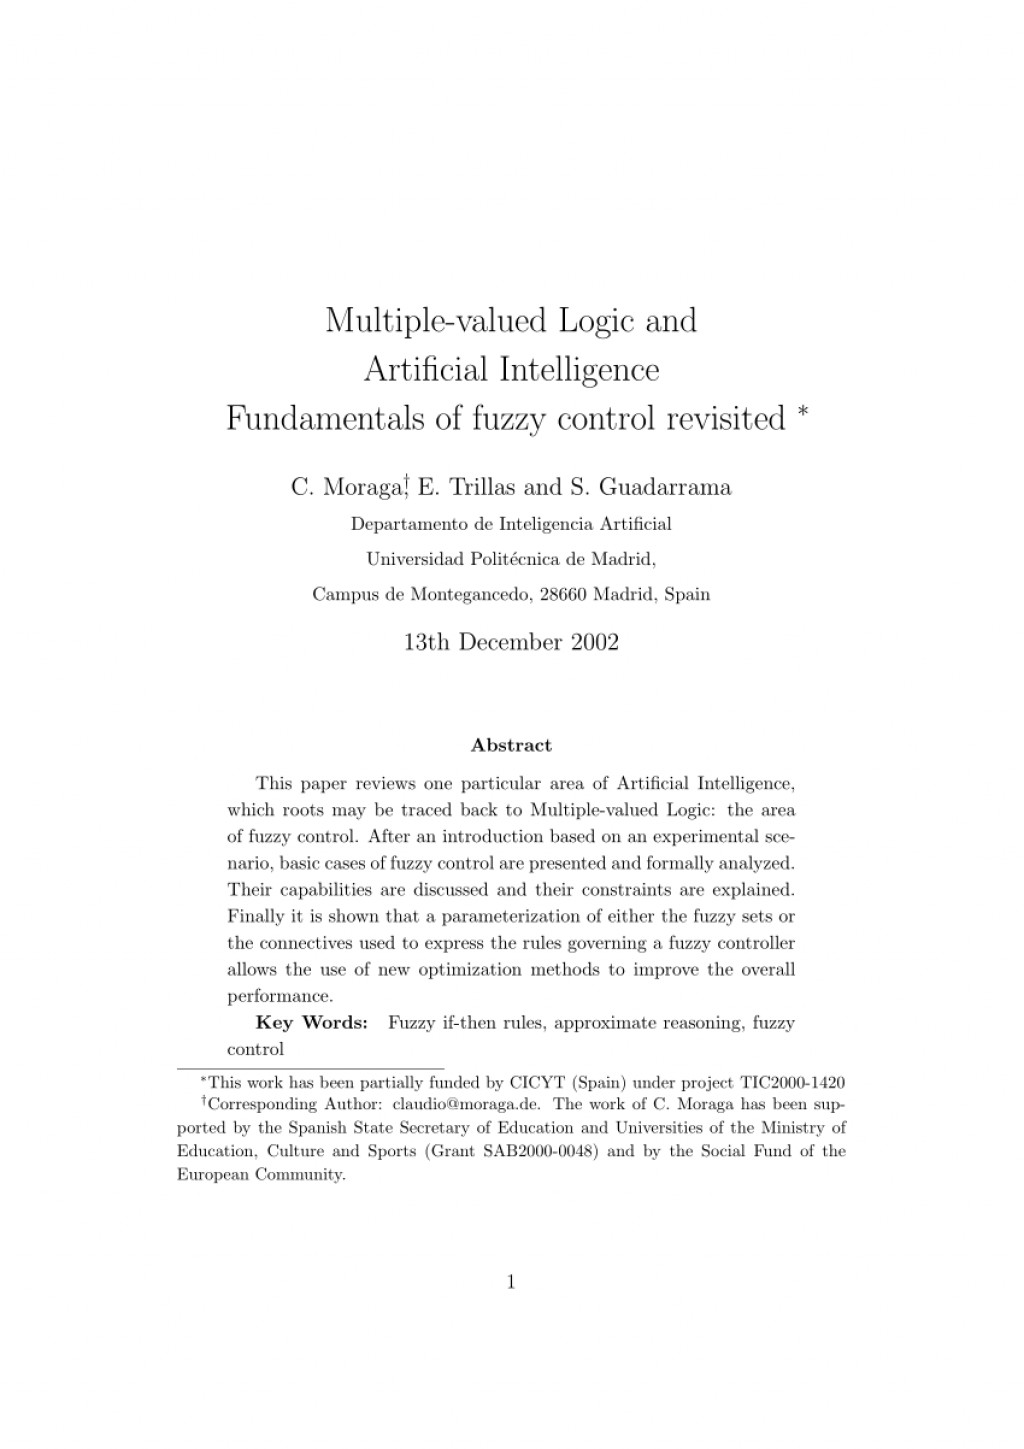 009 Research Paper Artificial Intelligence Outline Rare Large